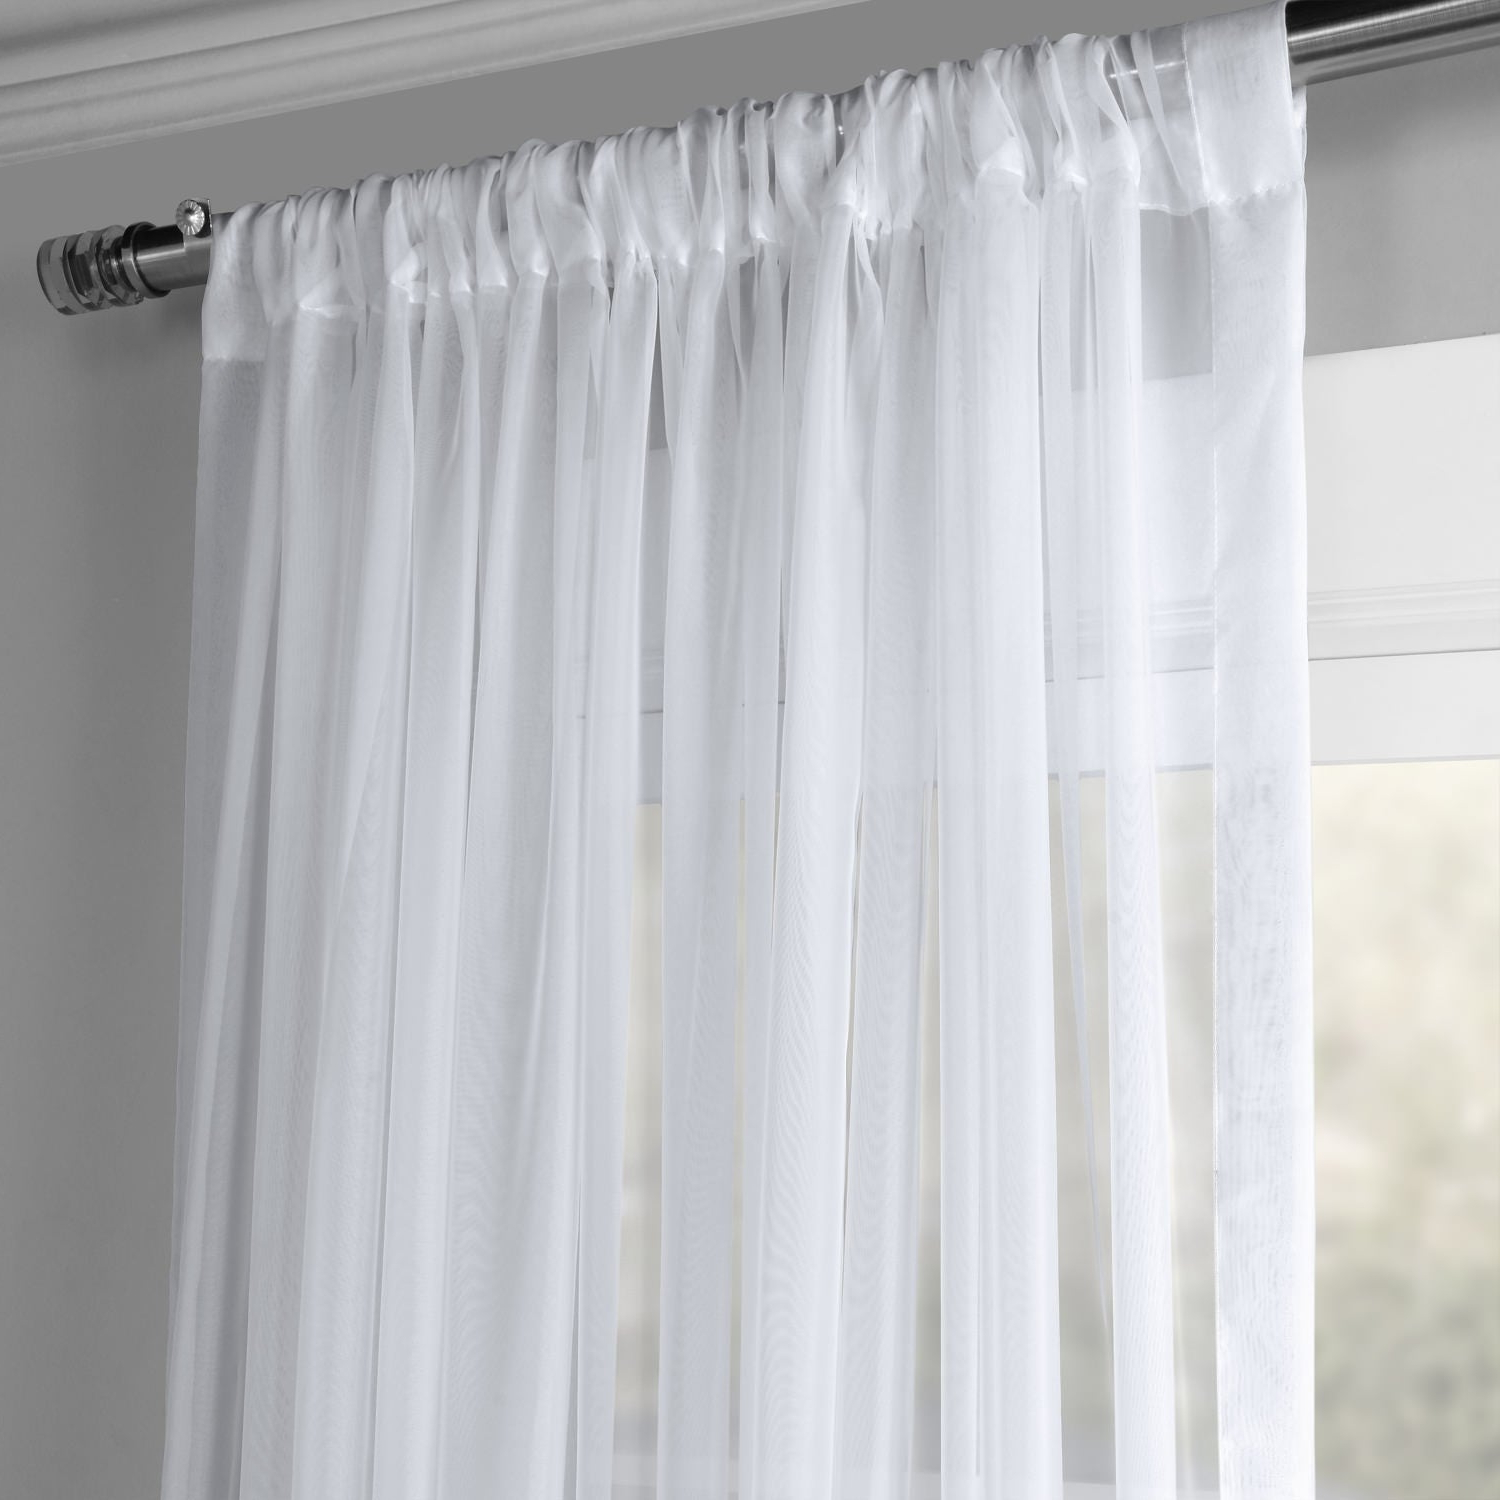 Widely Used Exclusive Fabrics Extra Wide White Voile Sheer Curtain Panel In Extra Wide White Voile Sheer Curtain Panels (View 3 of 20)